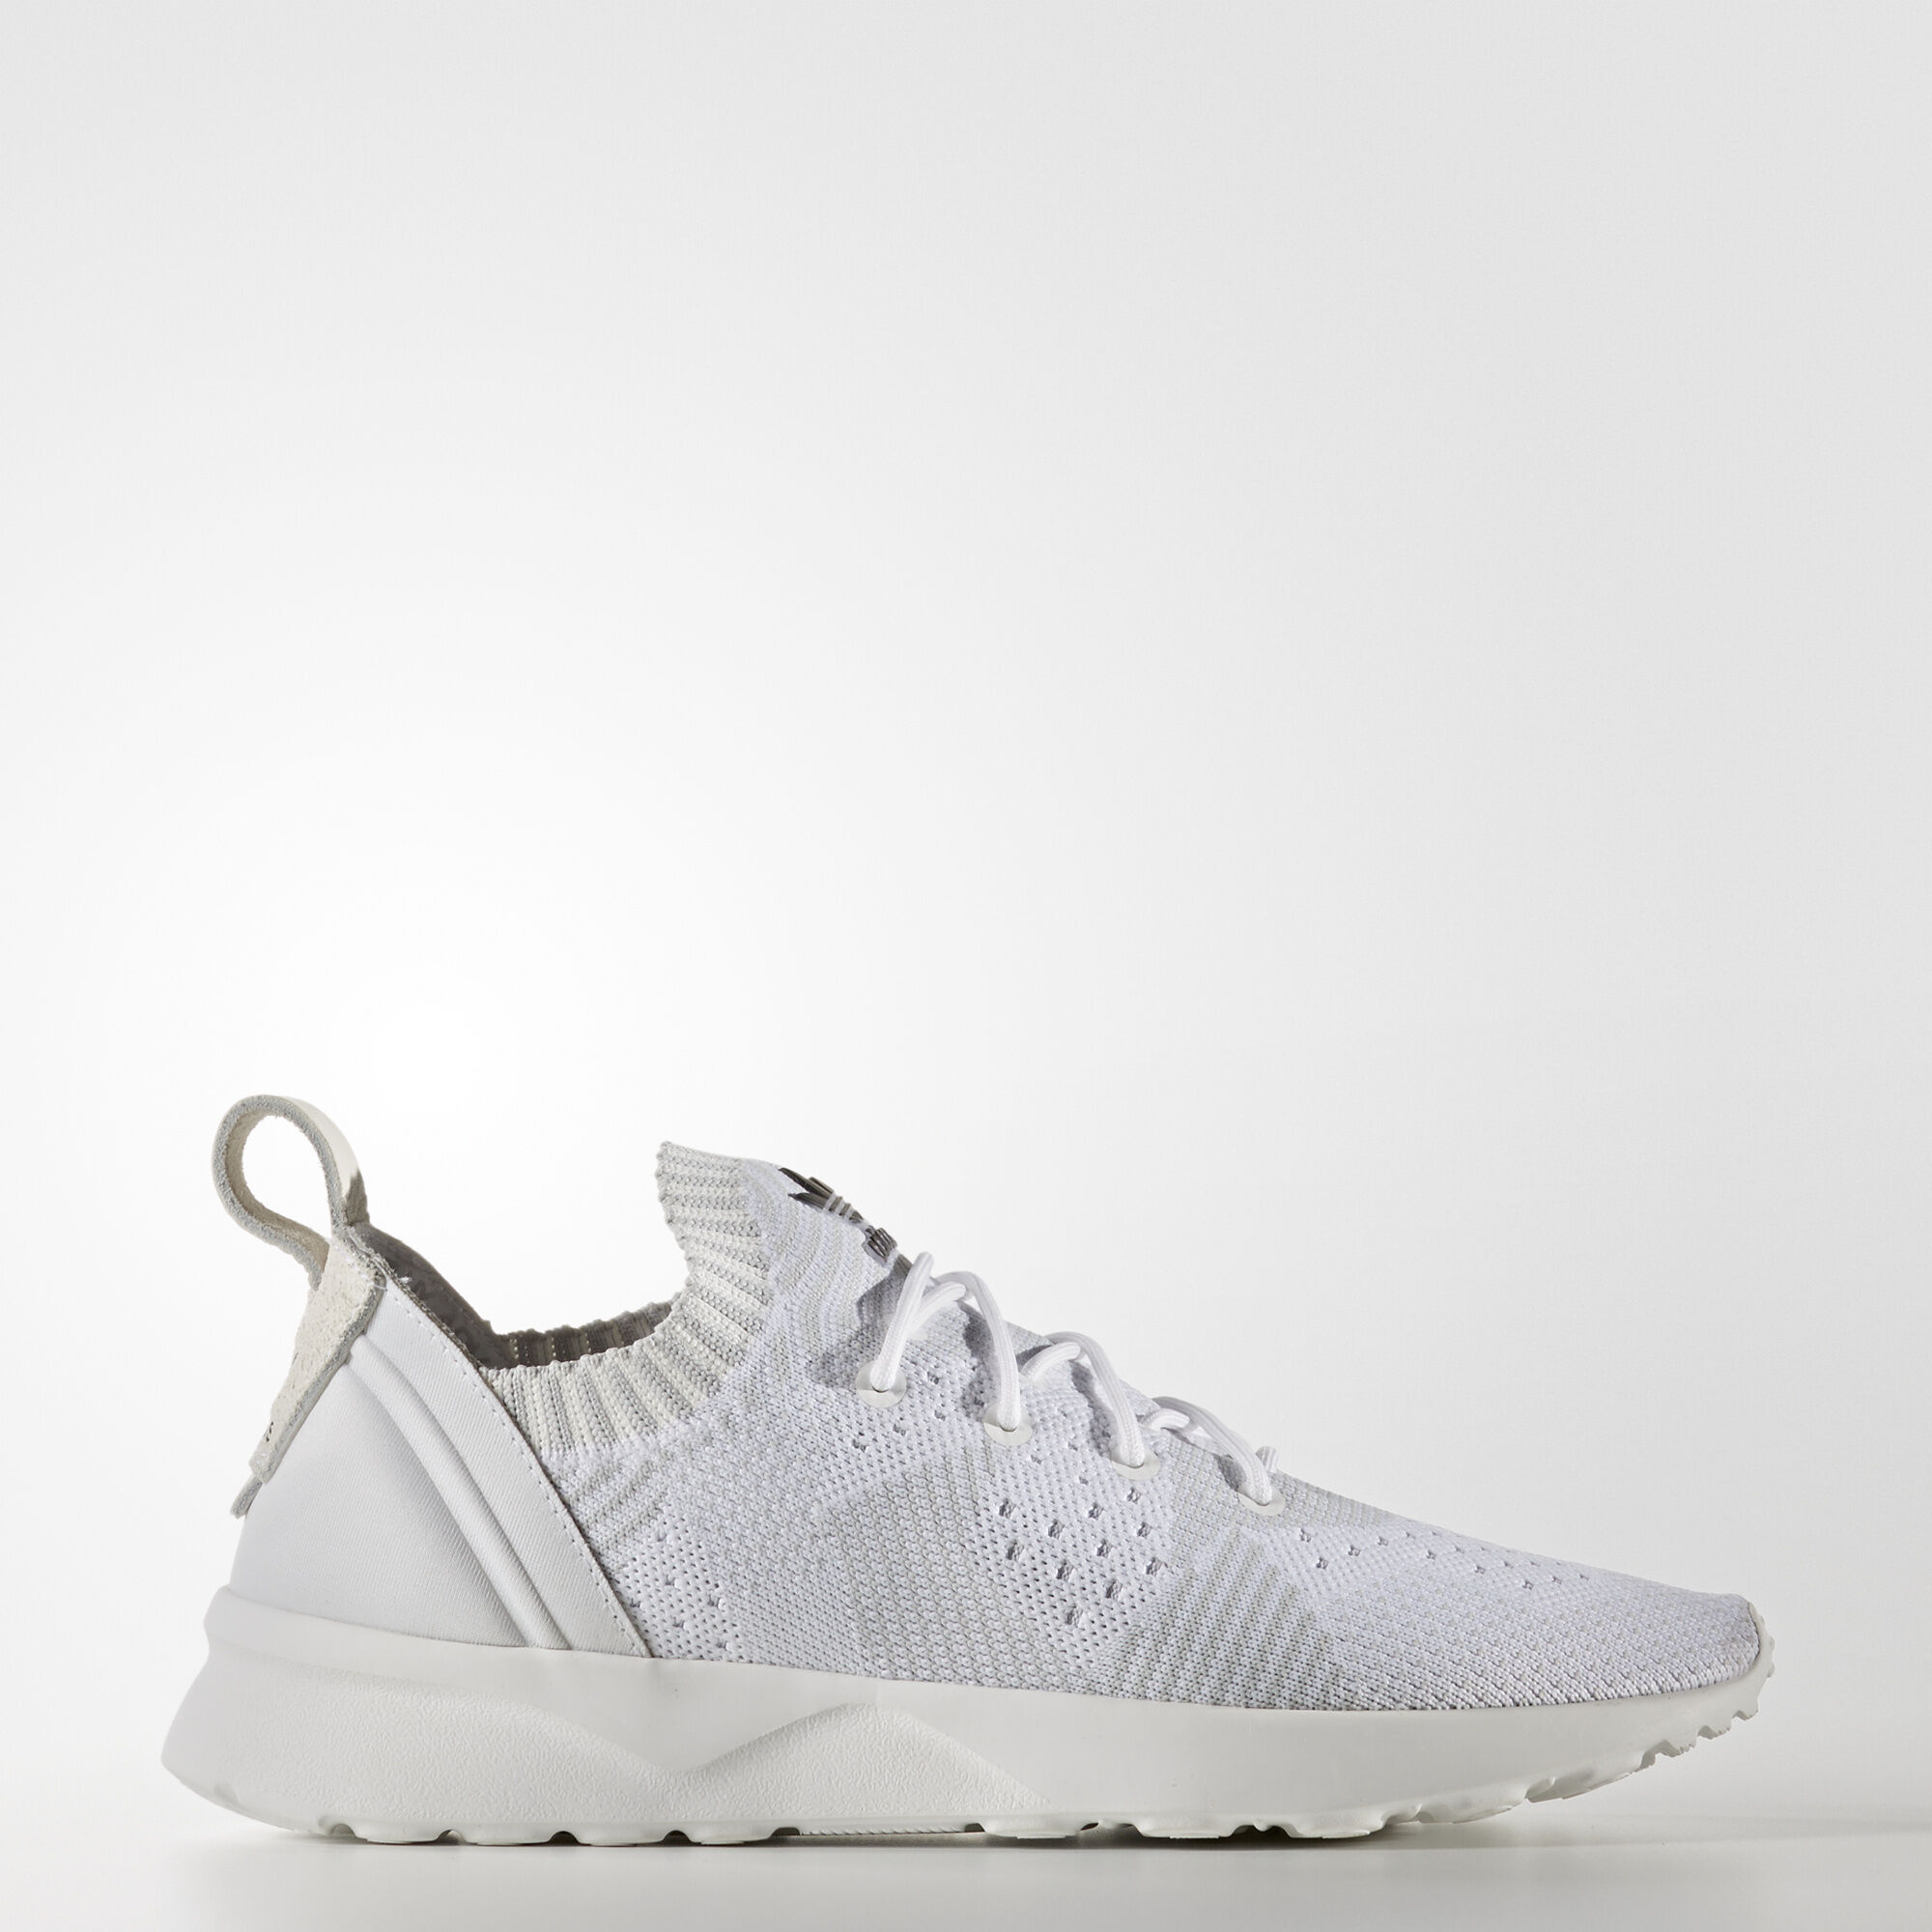 Adidas Zx Flux Adv Virtue Primeknit Shoes